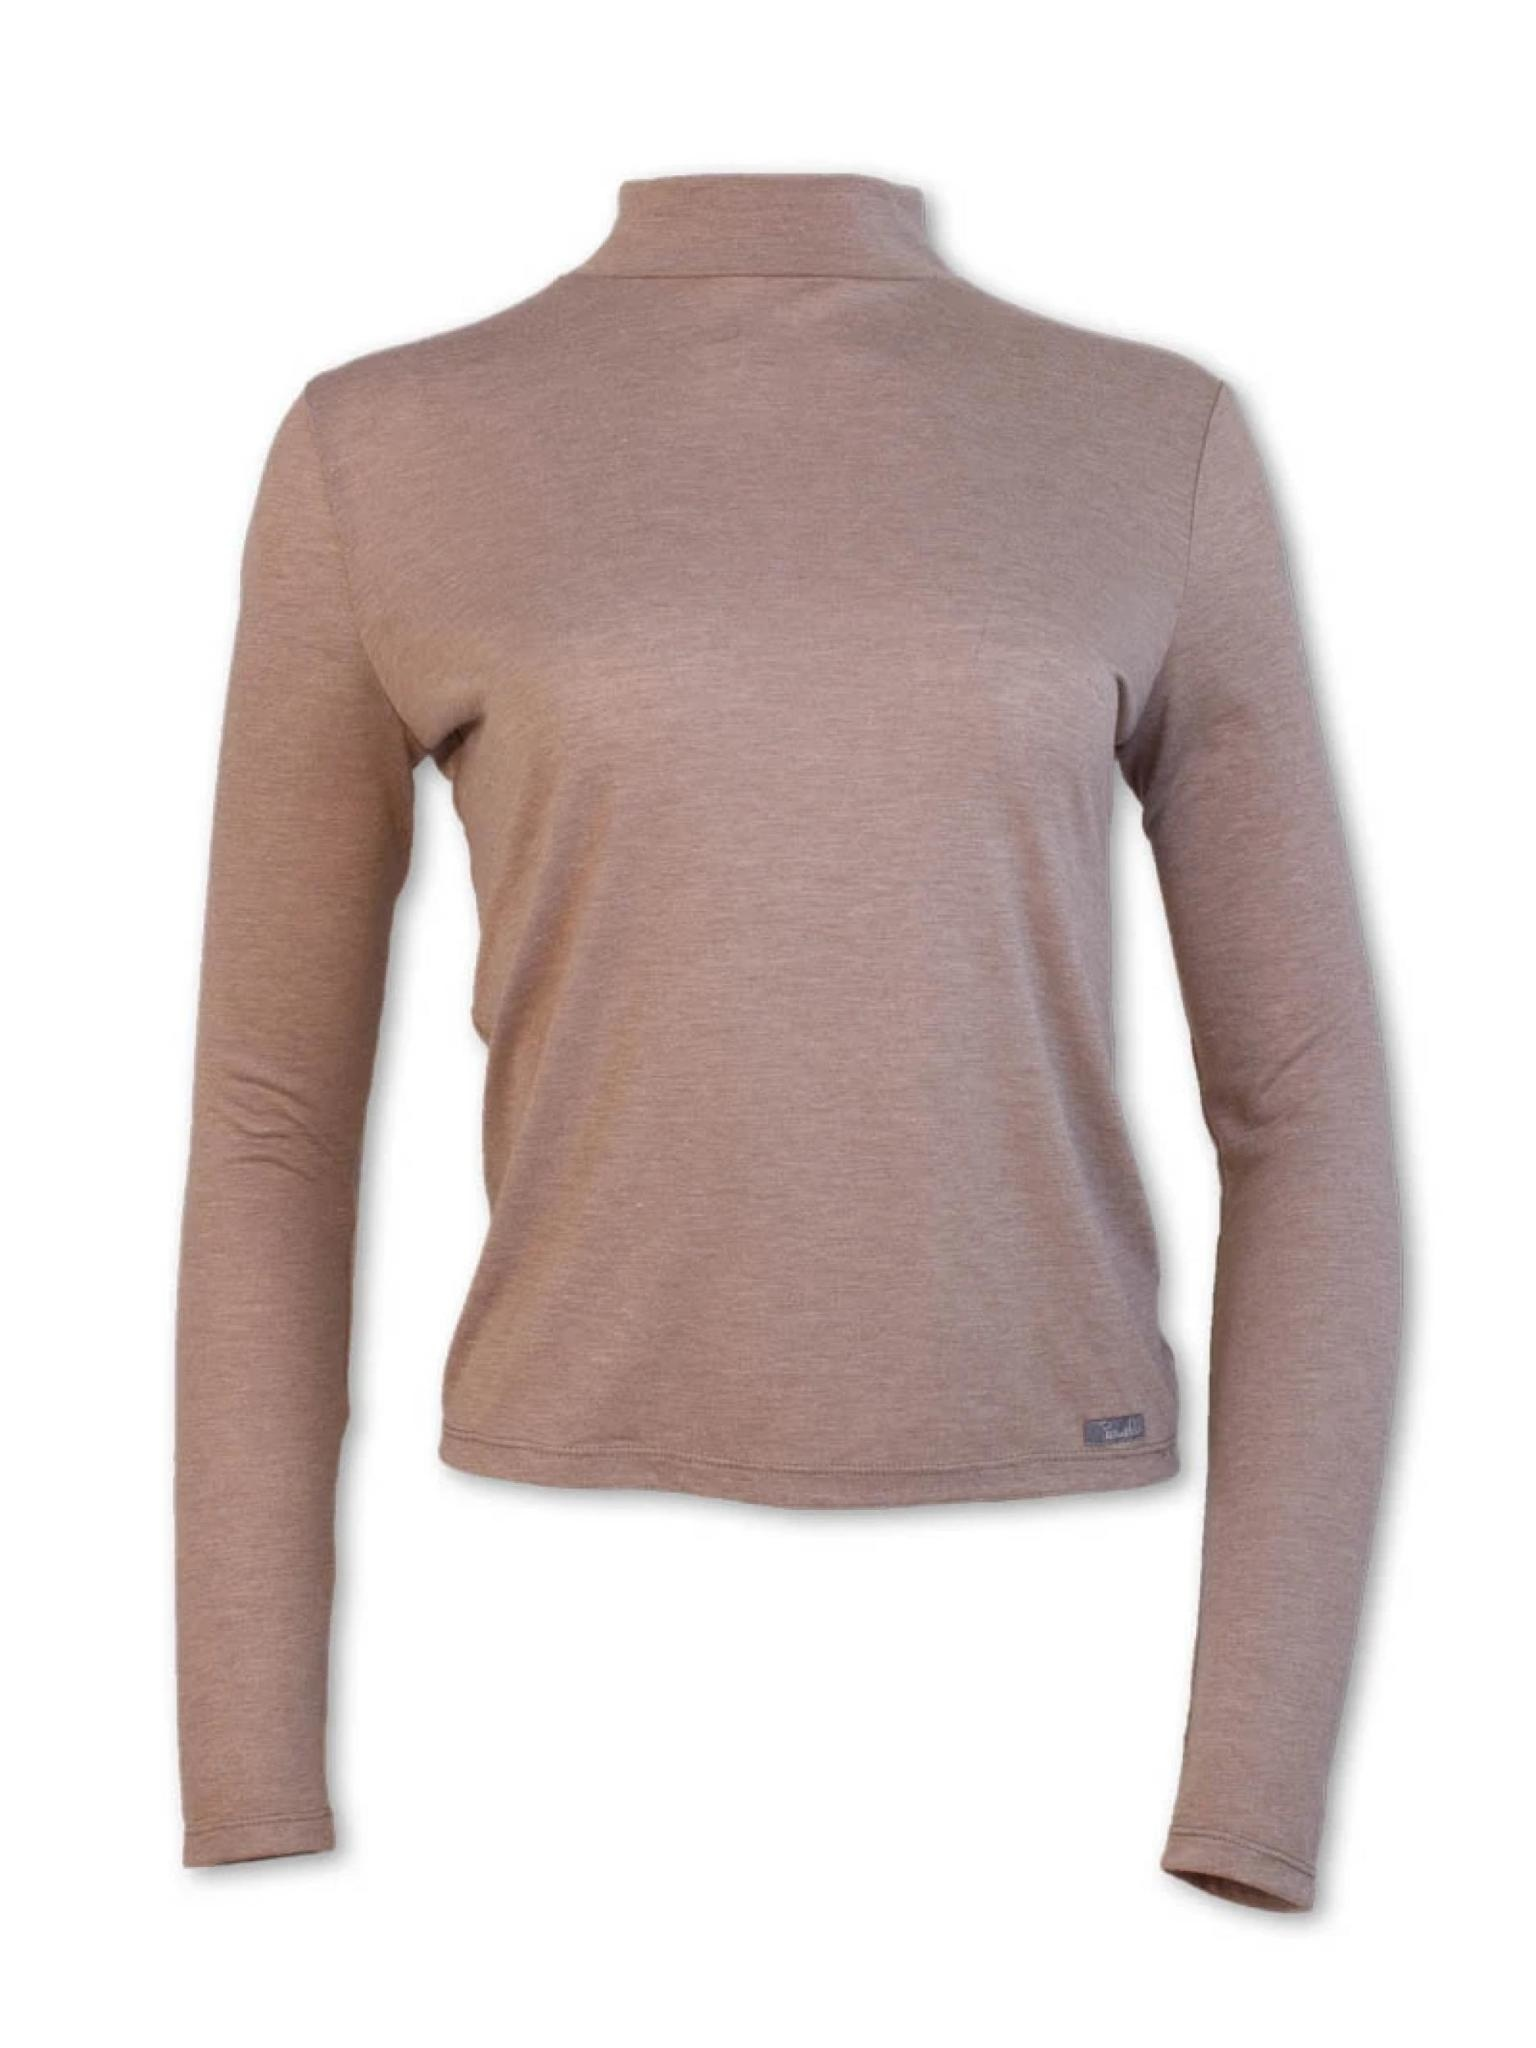 Purnell Women's Mock Turtle Neck Base Layer